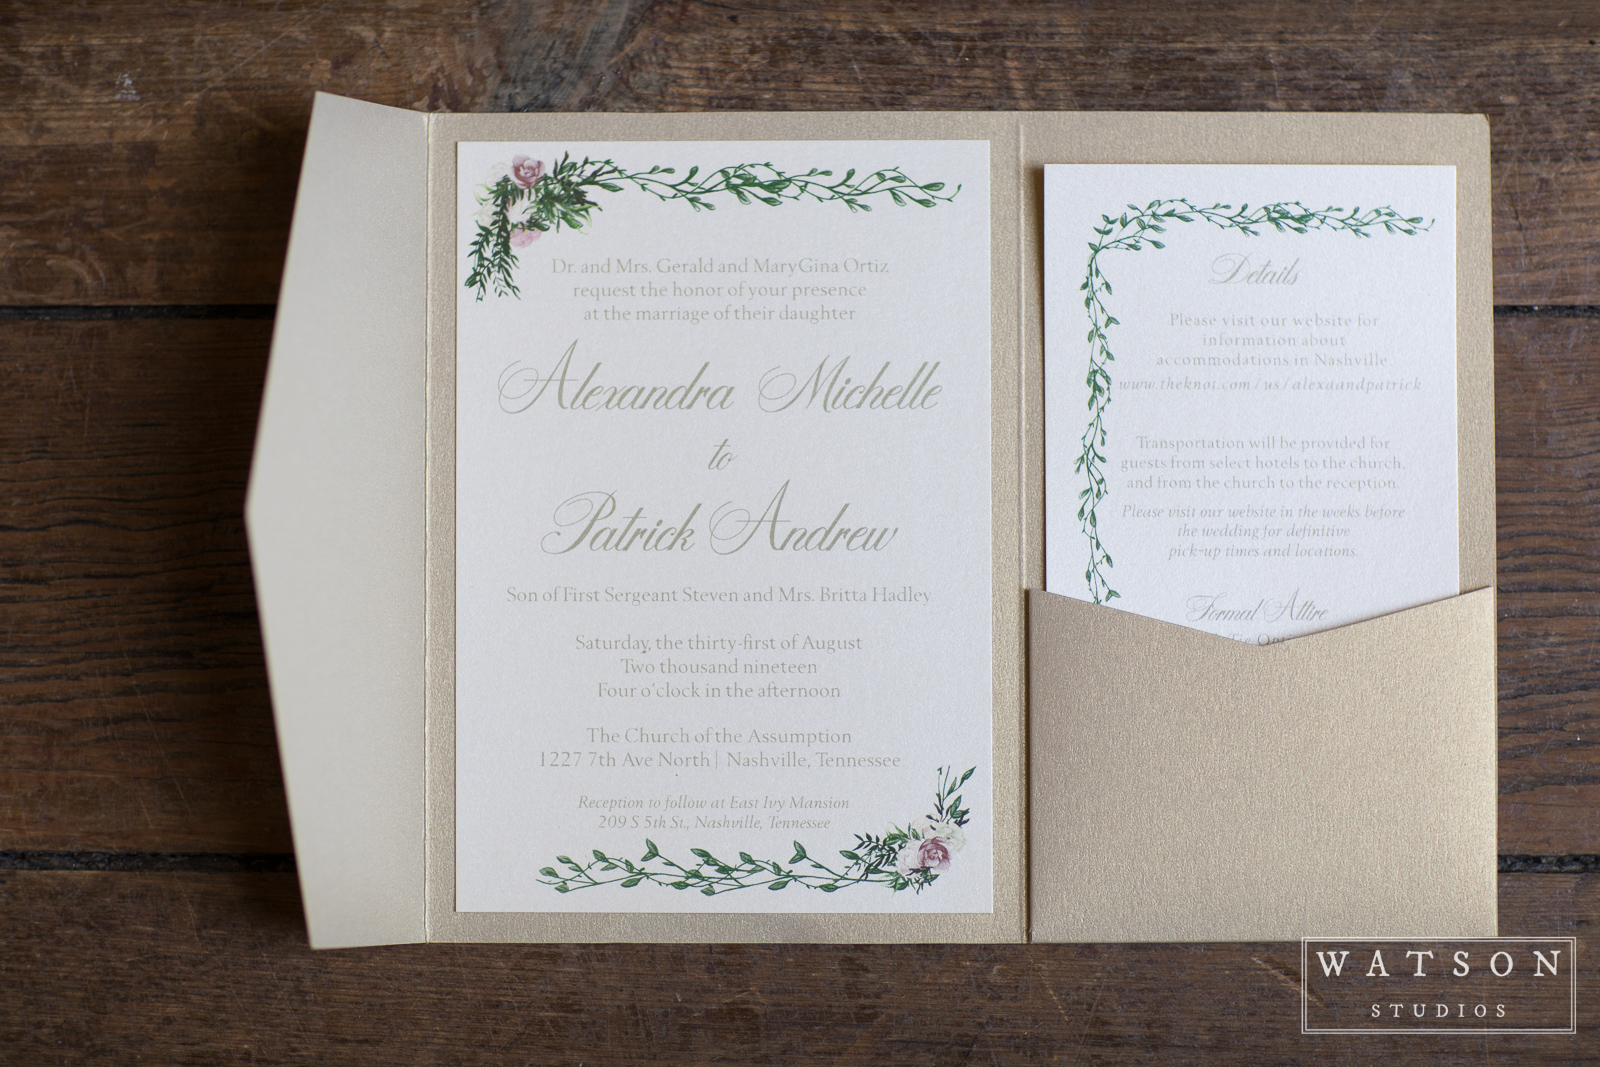 Wedding Invitations at East Ivy Mansion